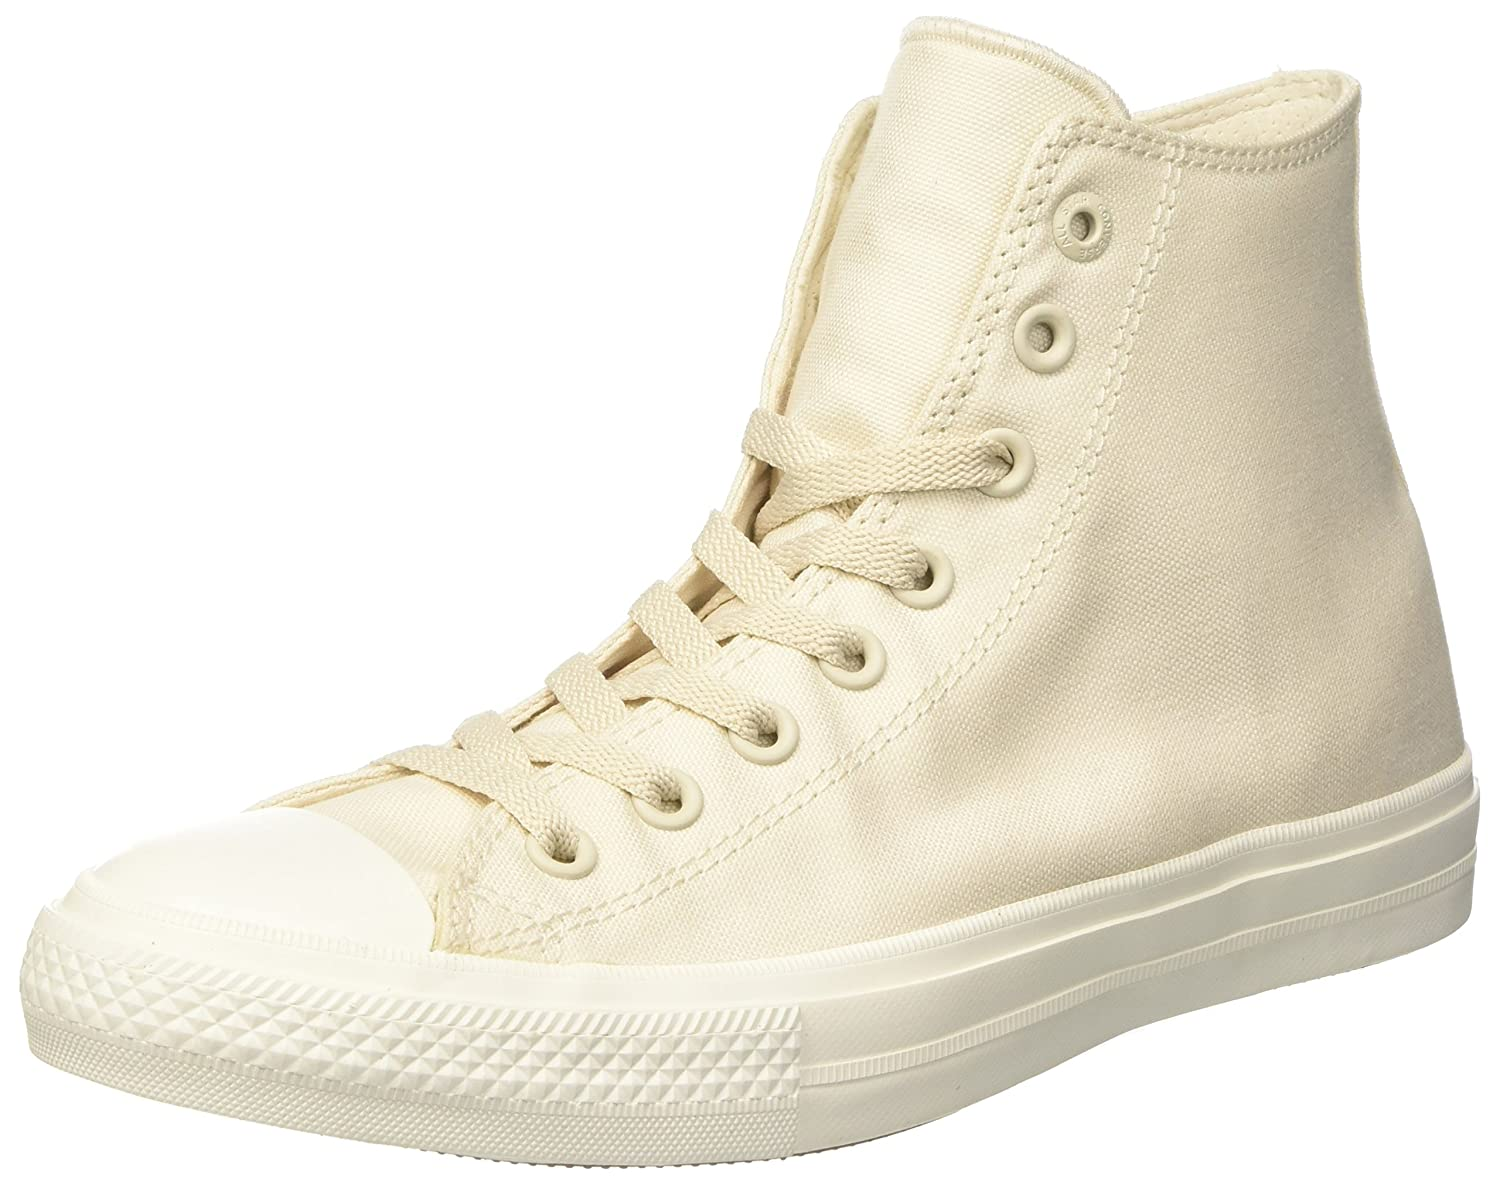 Converse Chuck Taylor All Star II High B010S7W2O6 S|Parchment/Navy/White